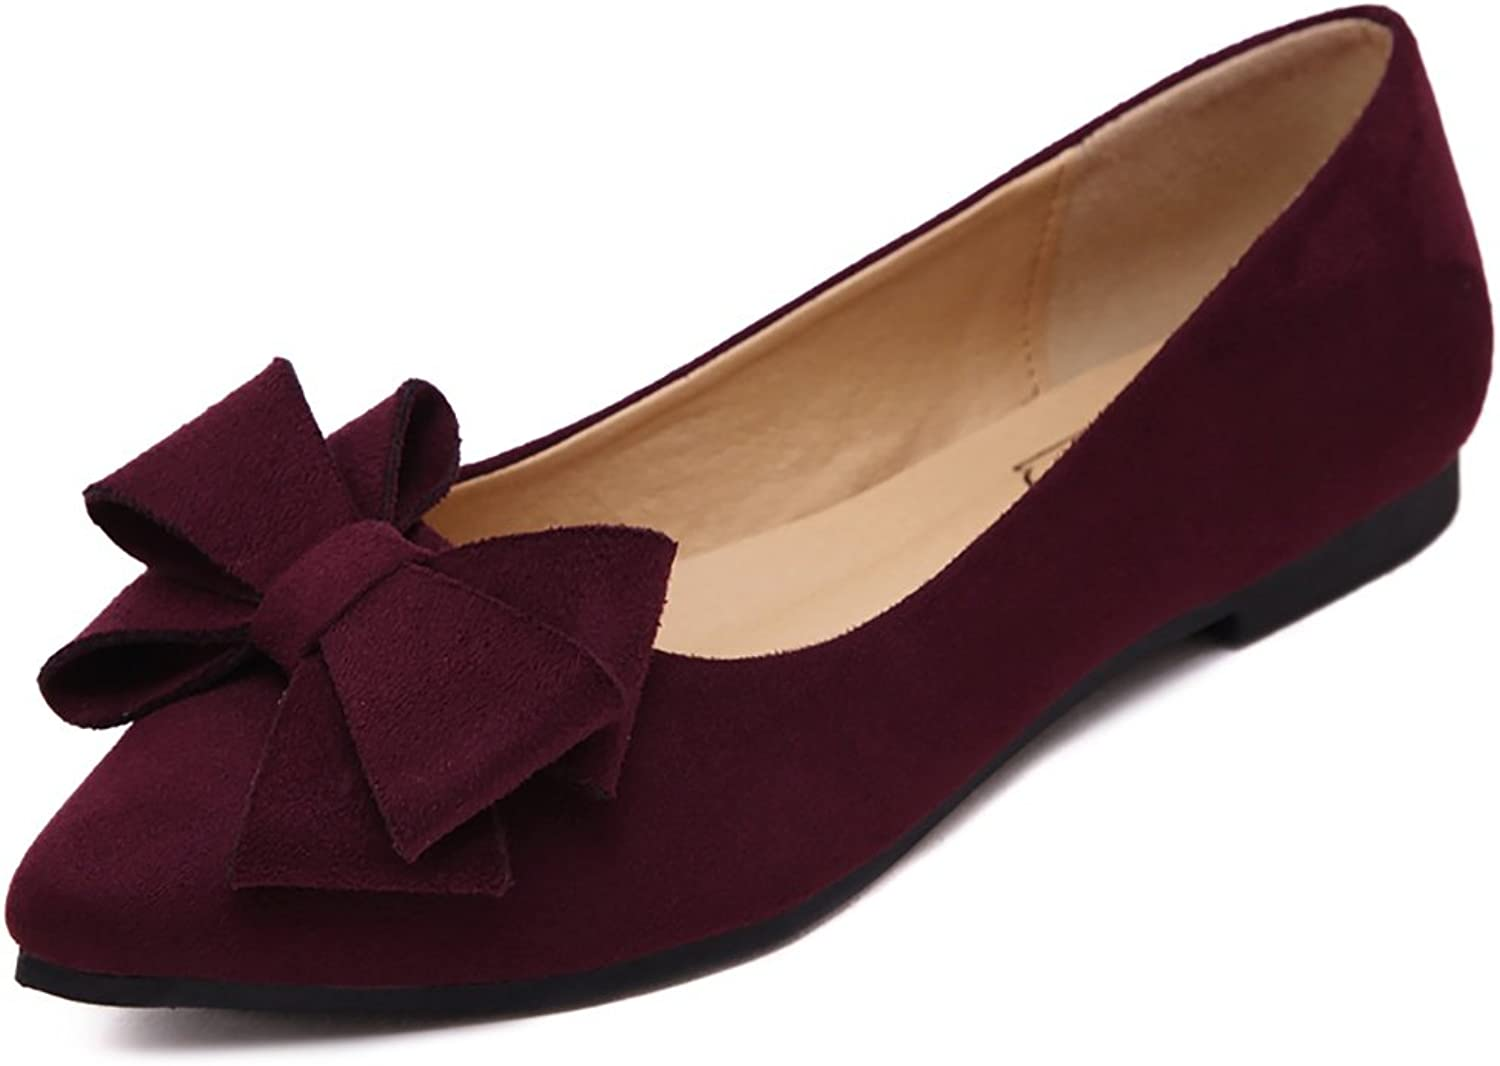 Meeshine Women's Comfortable Bow Point Toe Flat Pumps Slip On shoes